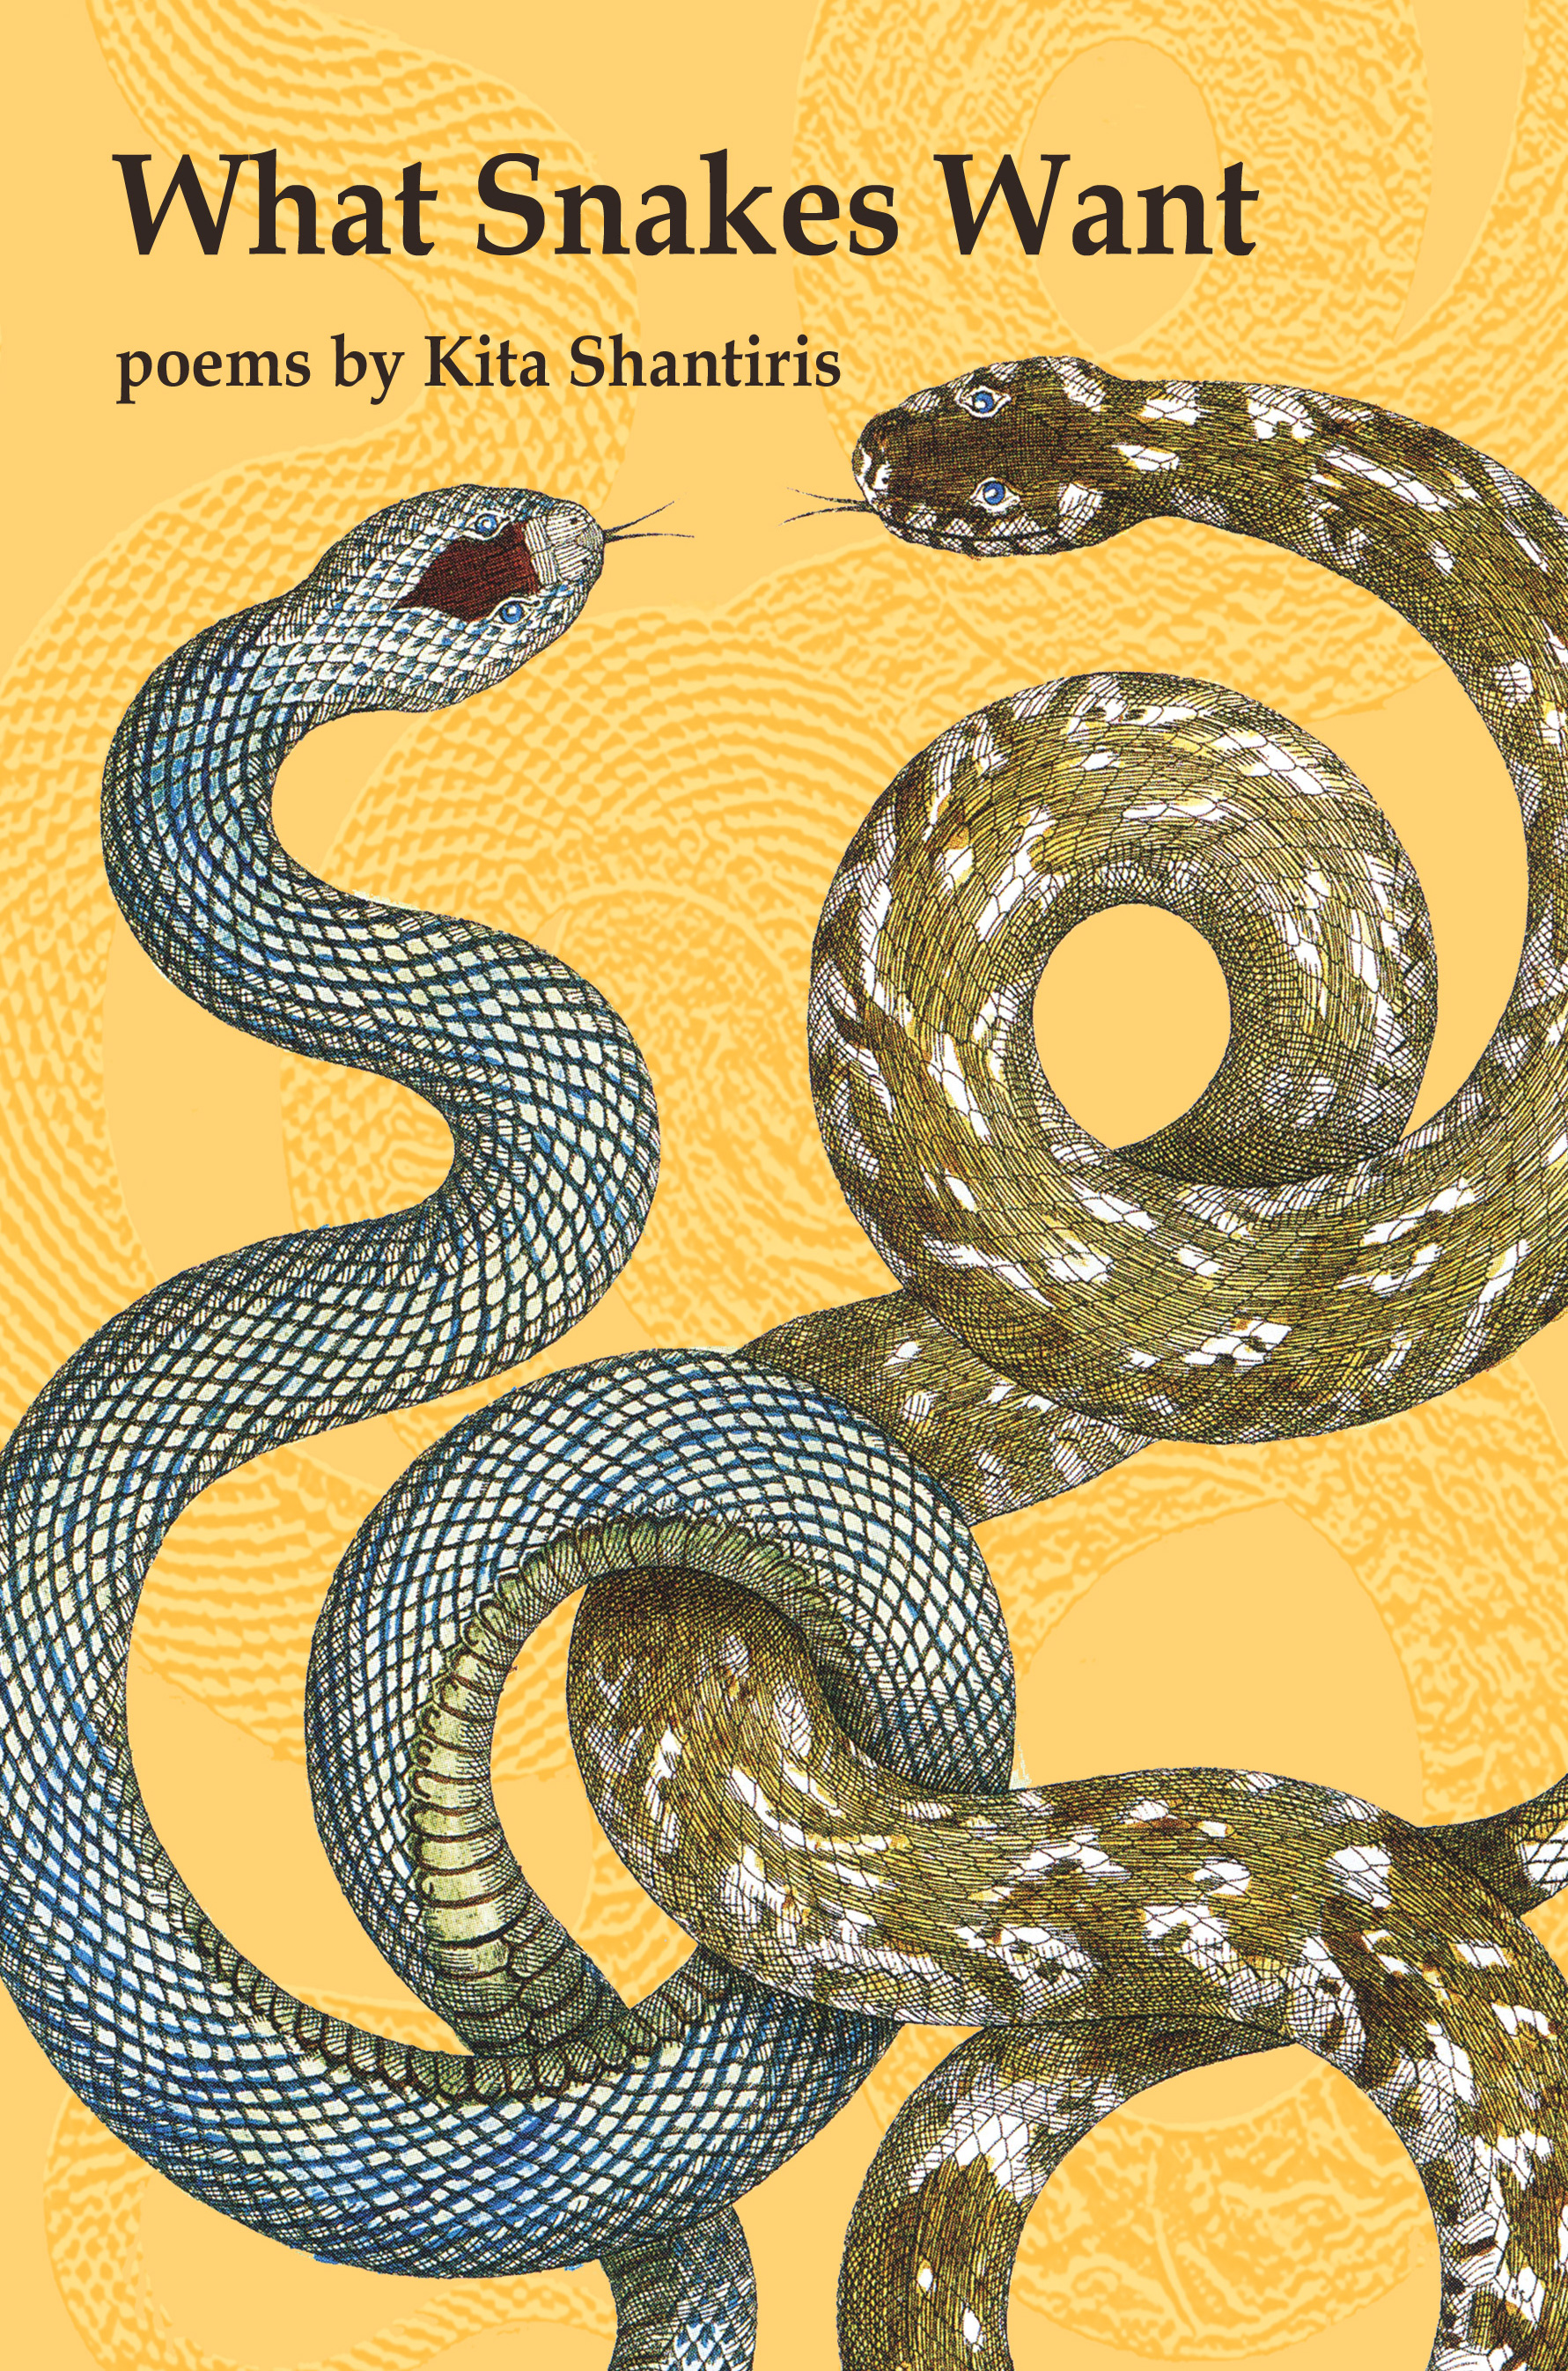 What Snakes Want – Kita Shantiris